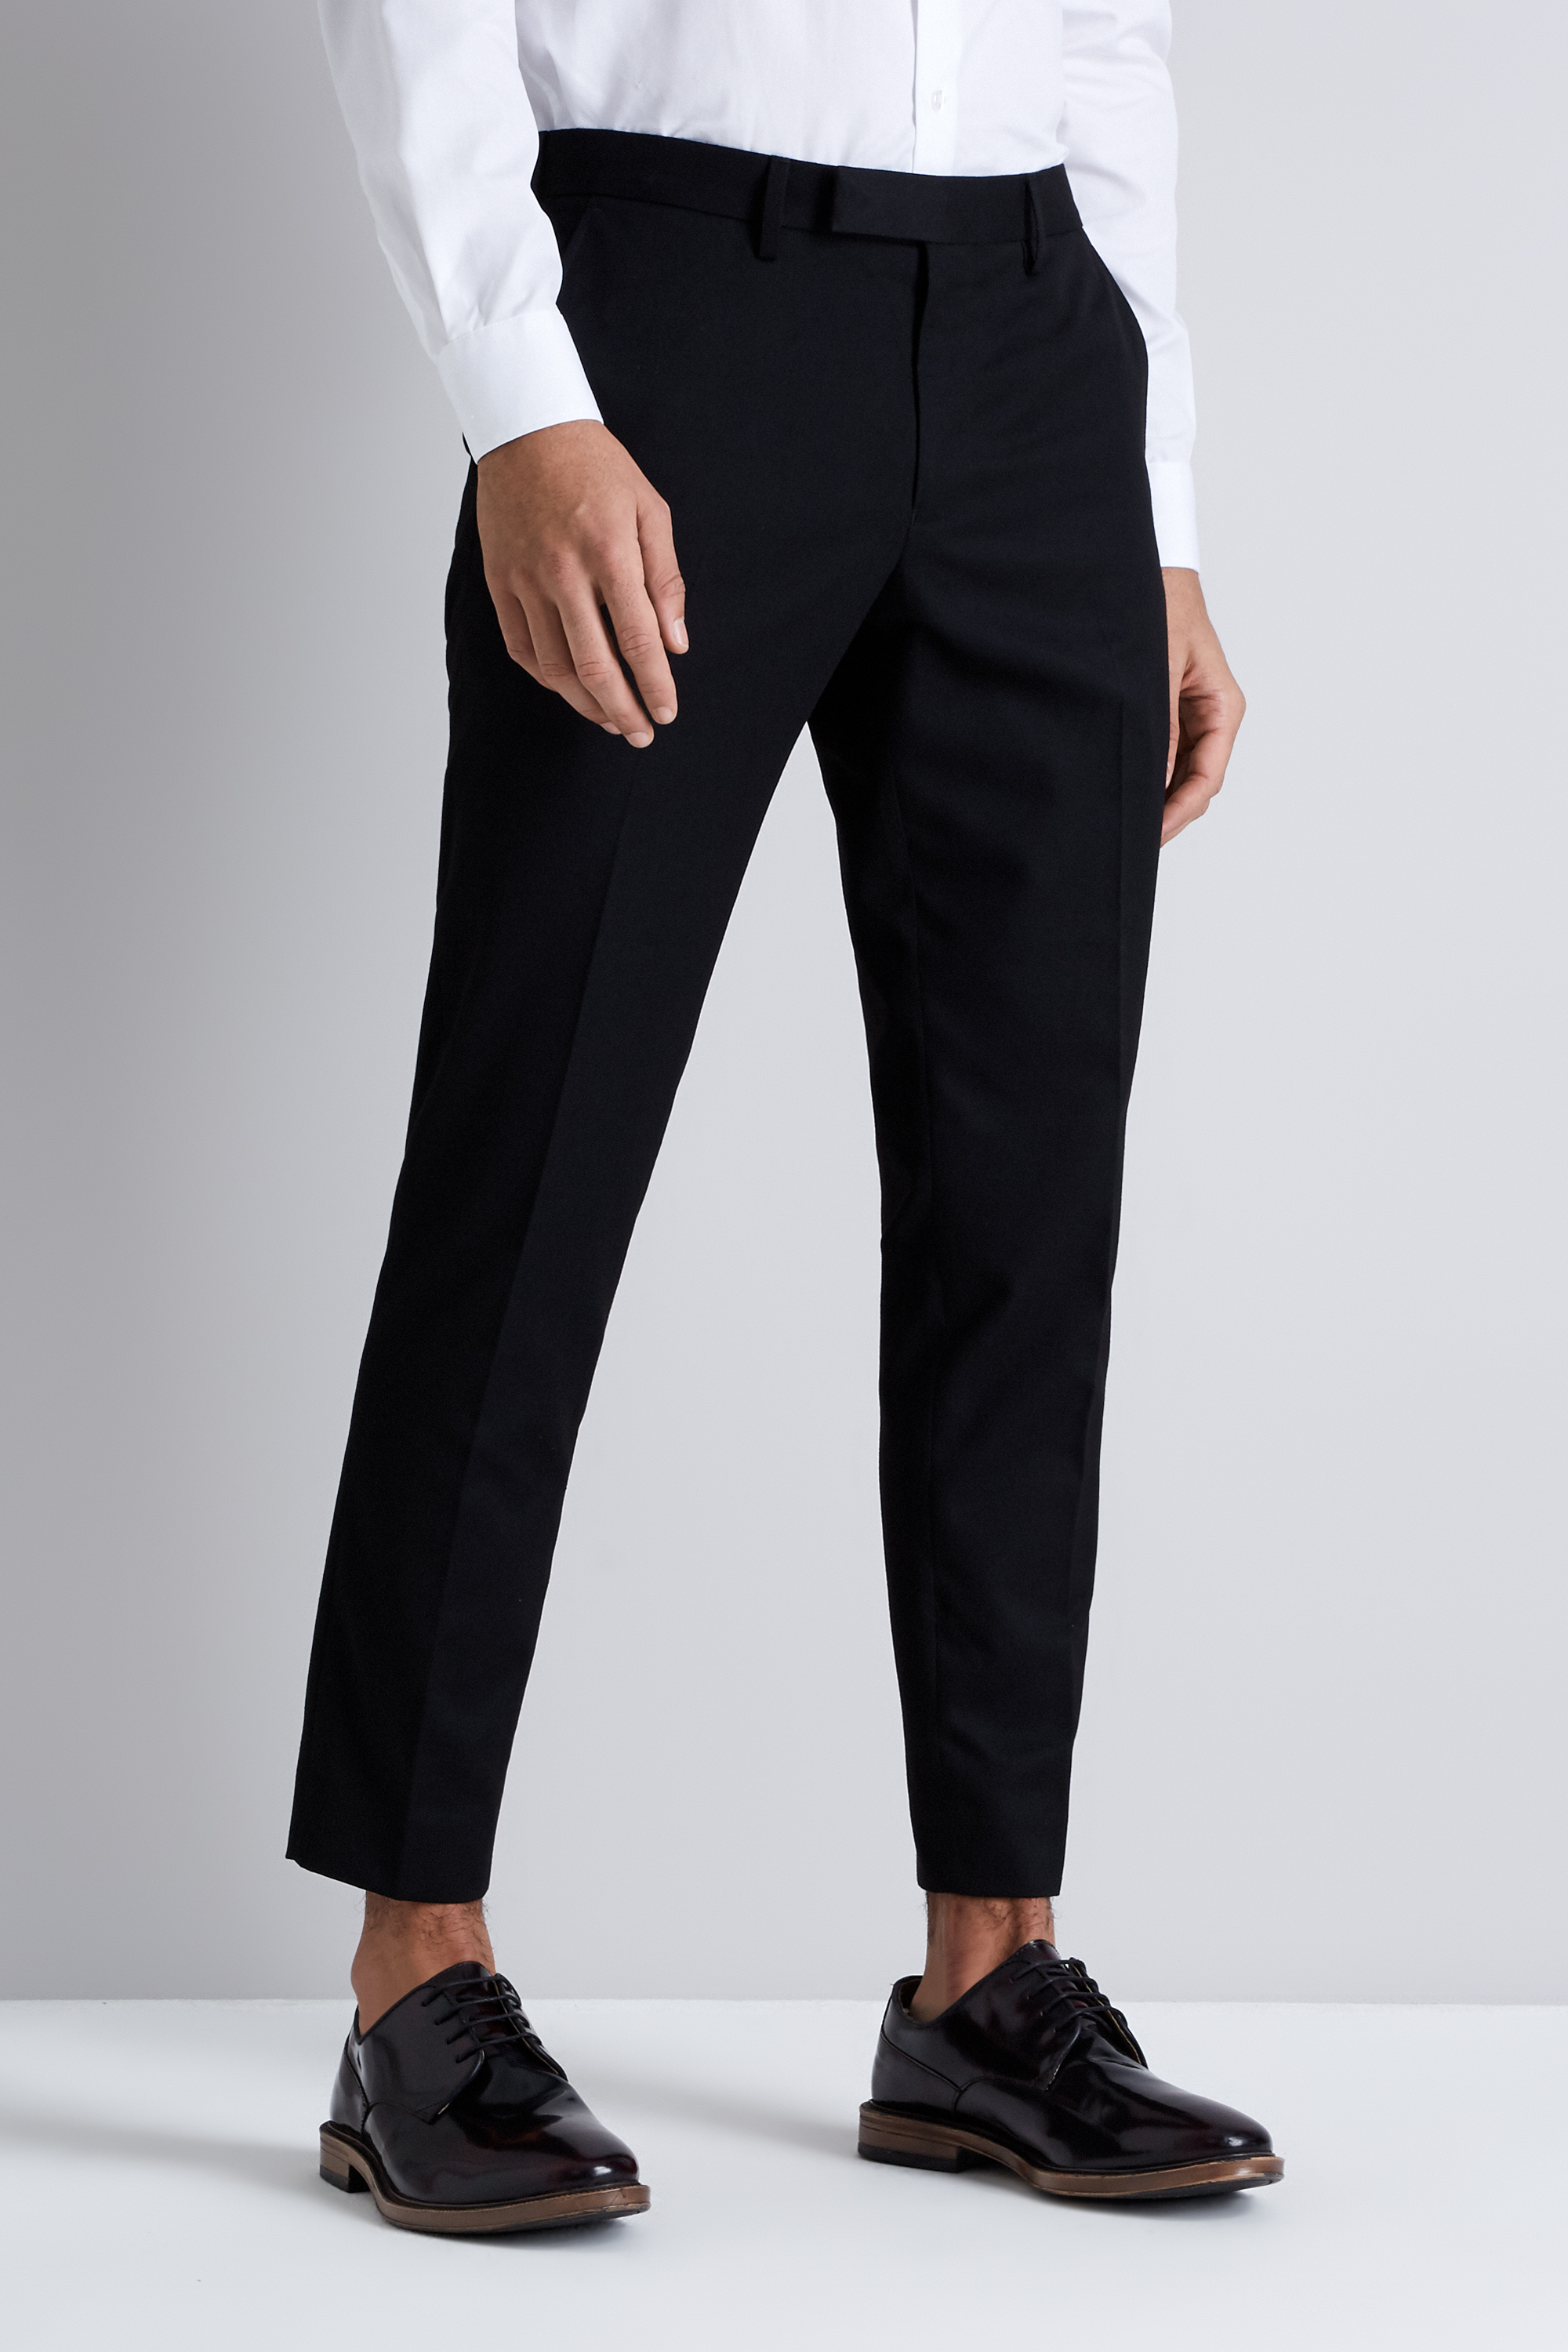 Moss London Skinny Fit Black Cropped Pants